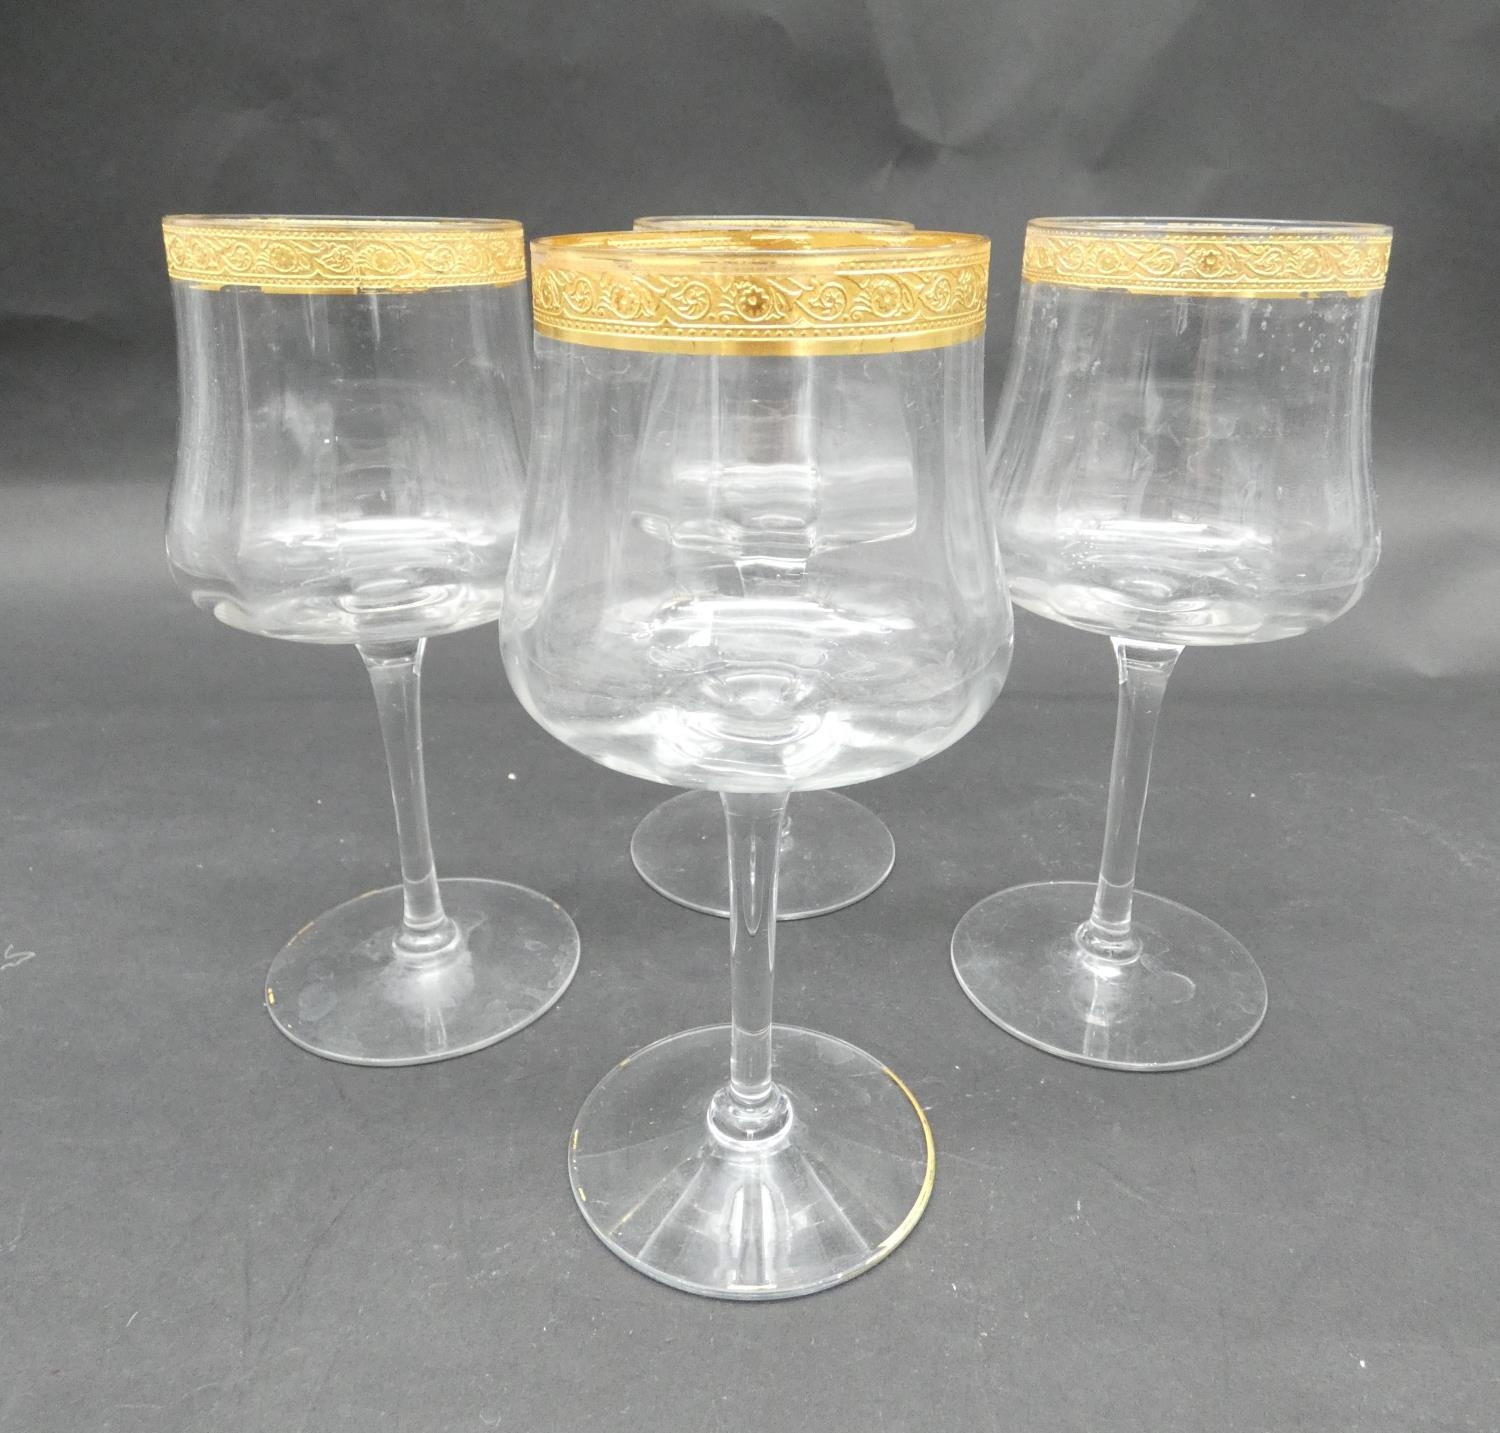 A collection of glasses. Including a set of five sherry glasses with gilded Orion symbols, along - Image 12 of 14